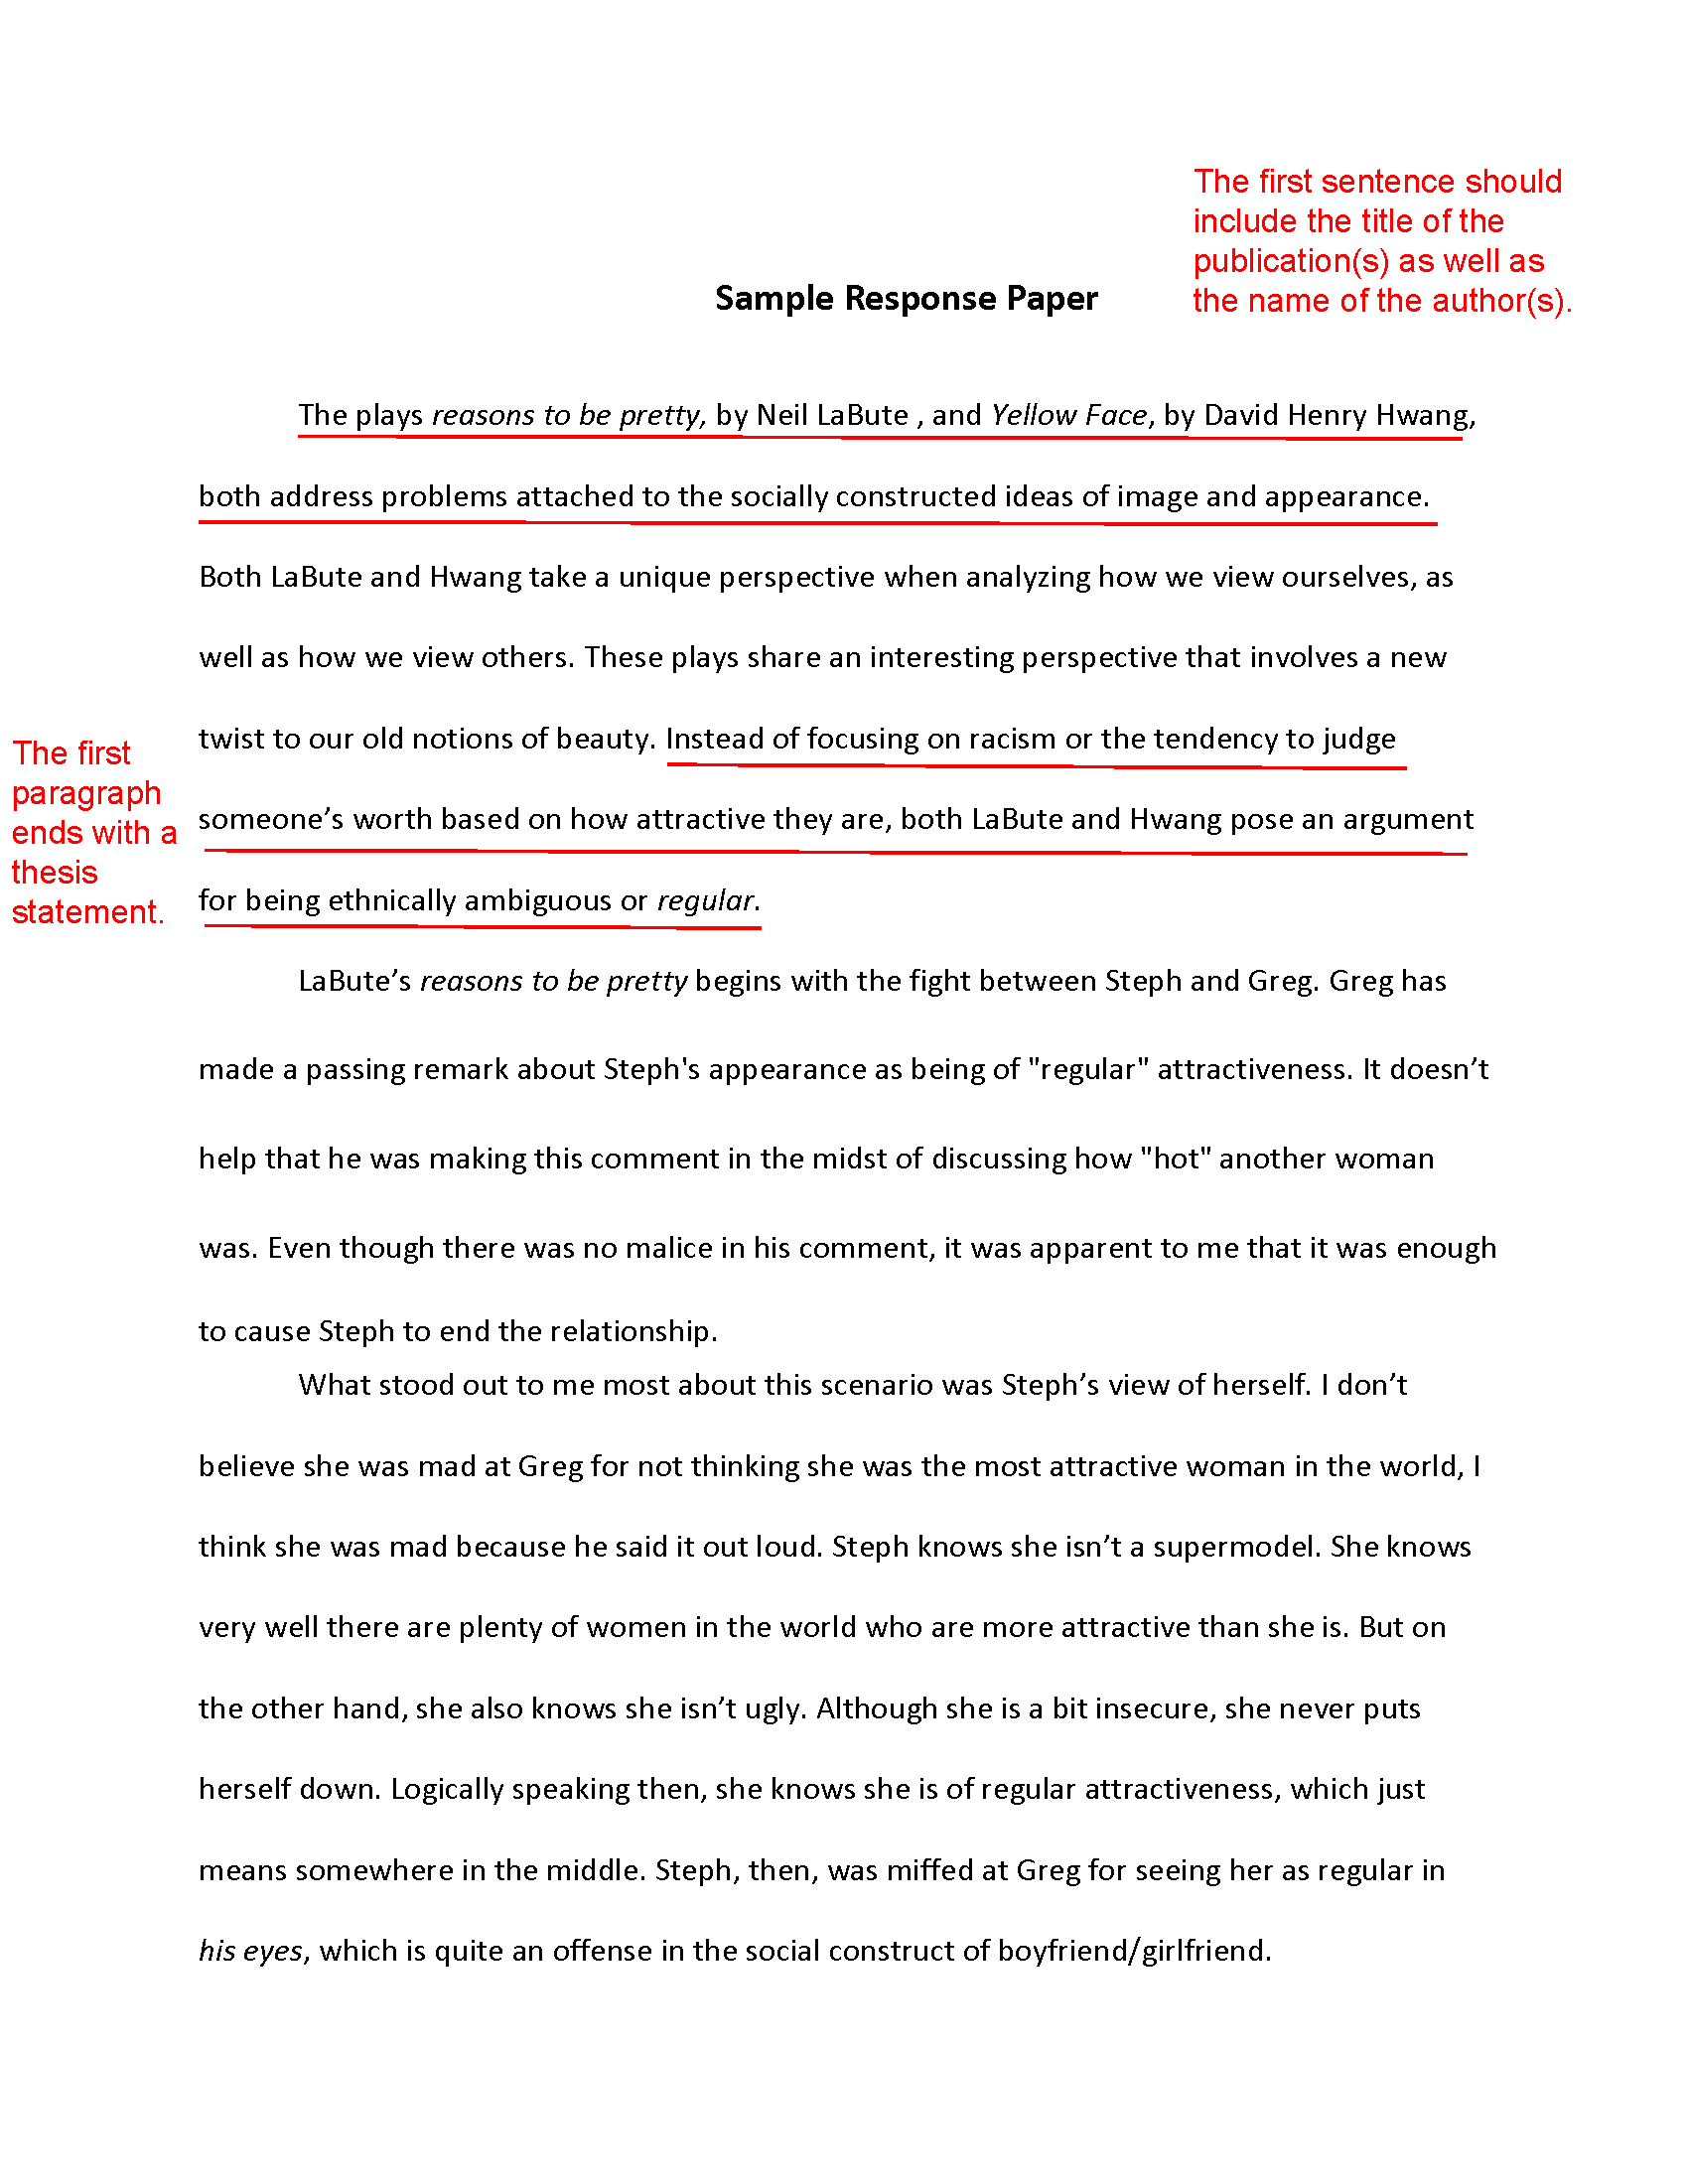 Sample Essays For High School  Essay On Health also Proposal Essay Topic Ideas How To Write A Response Paper What Is A Thesis For An Essay